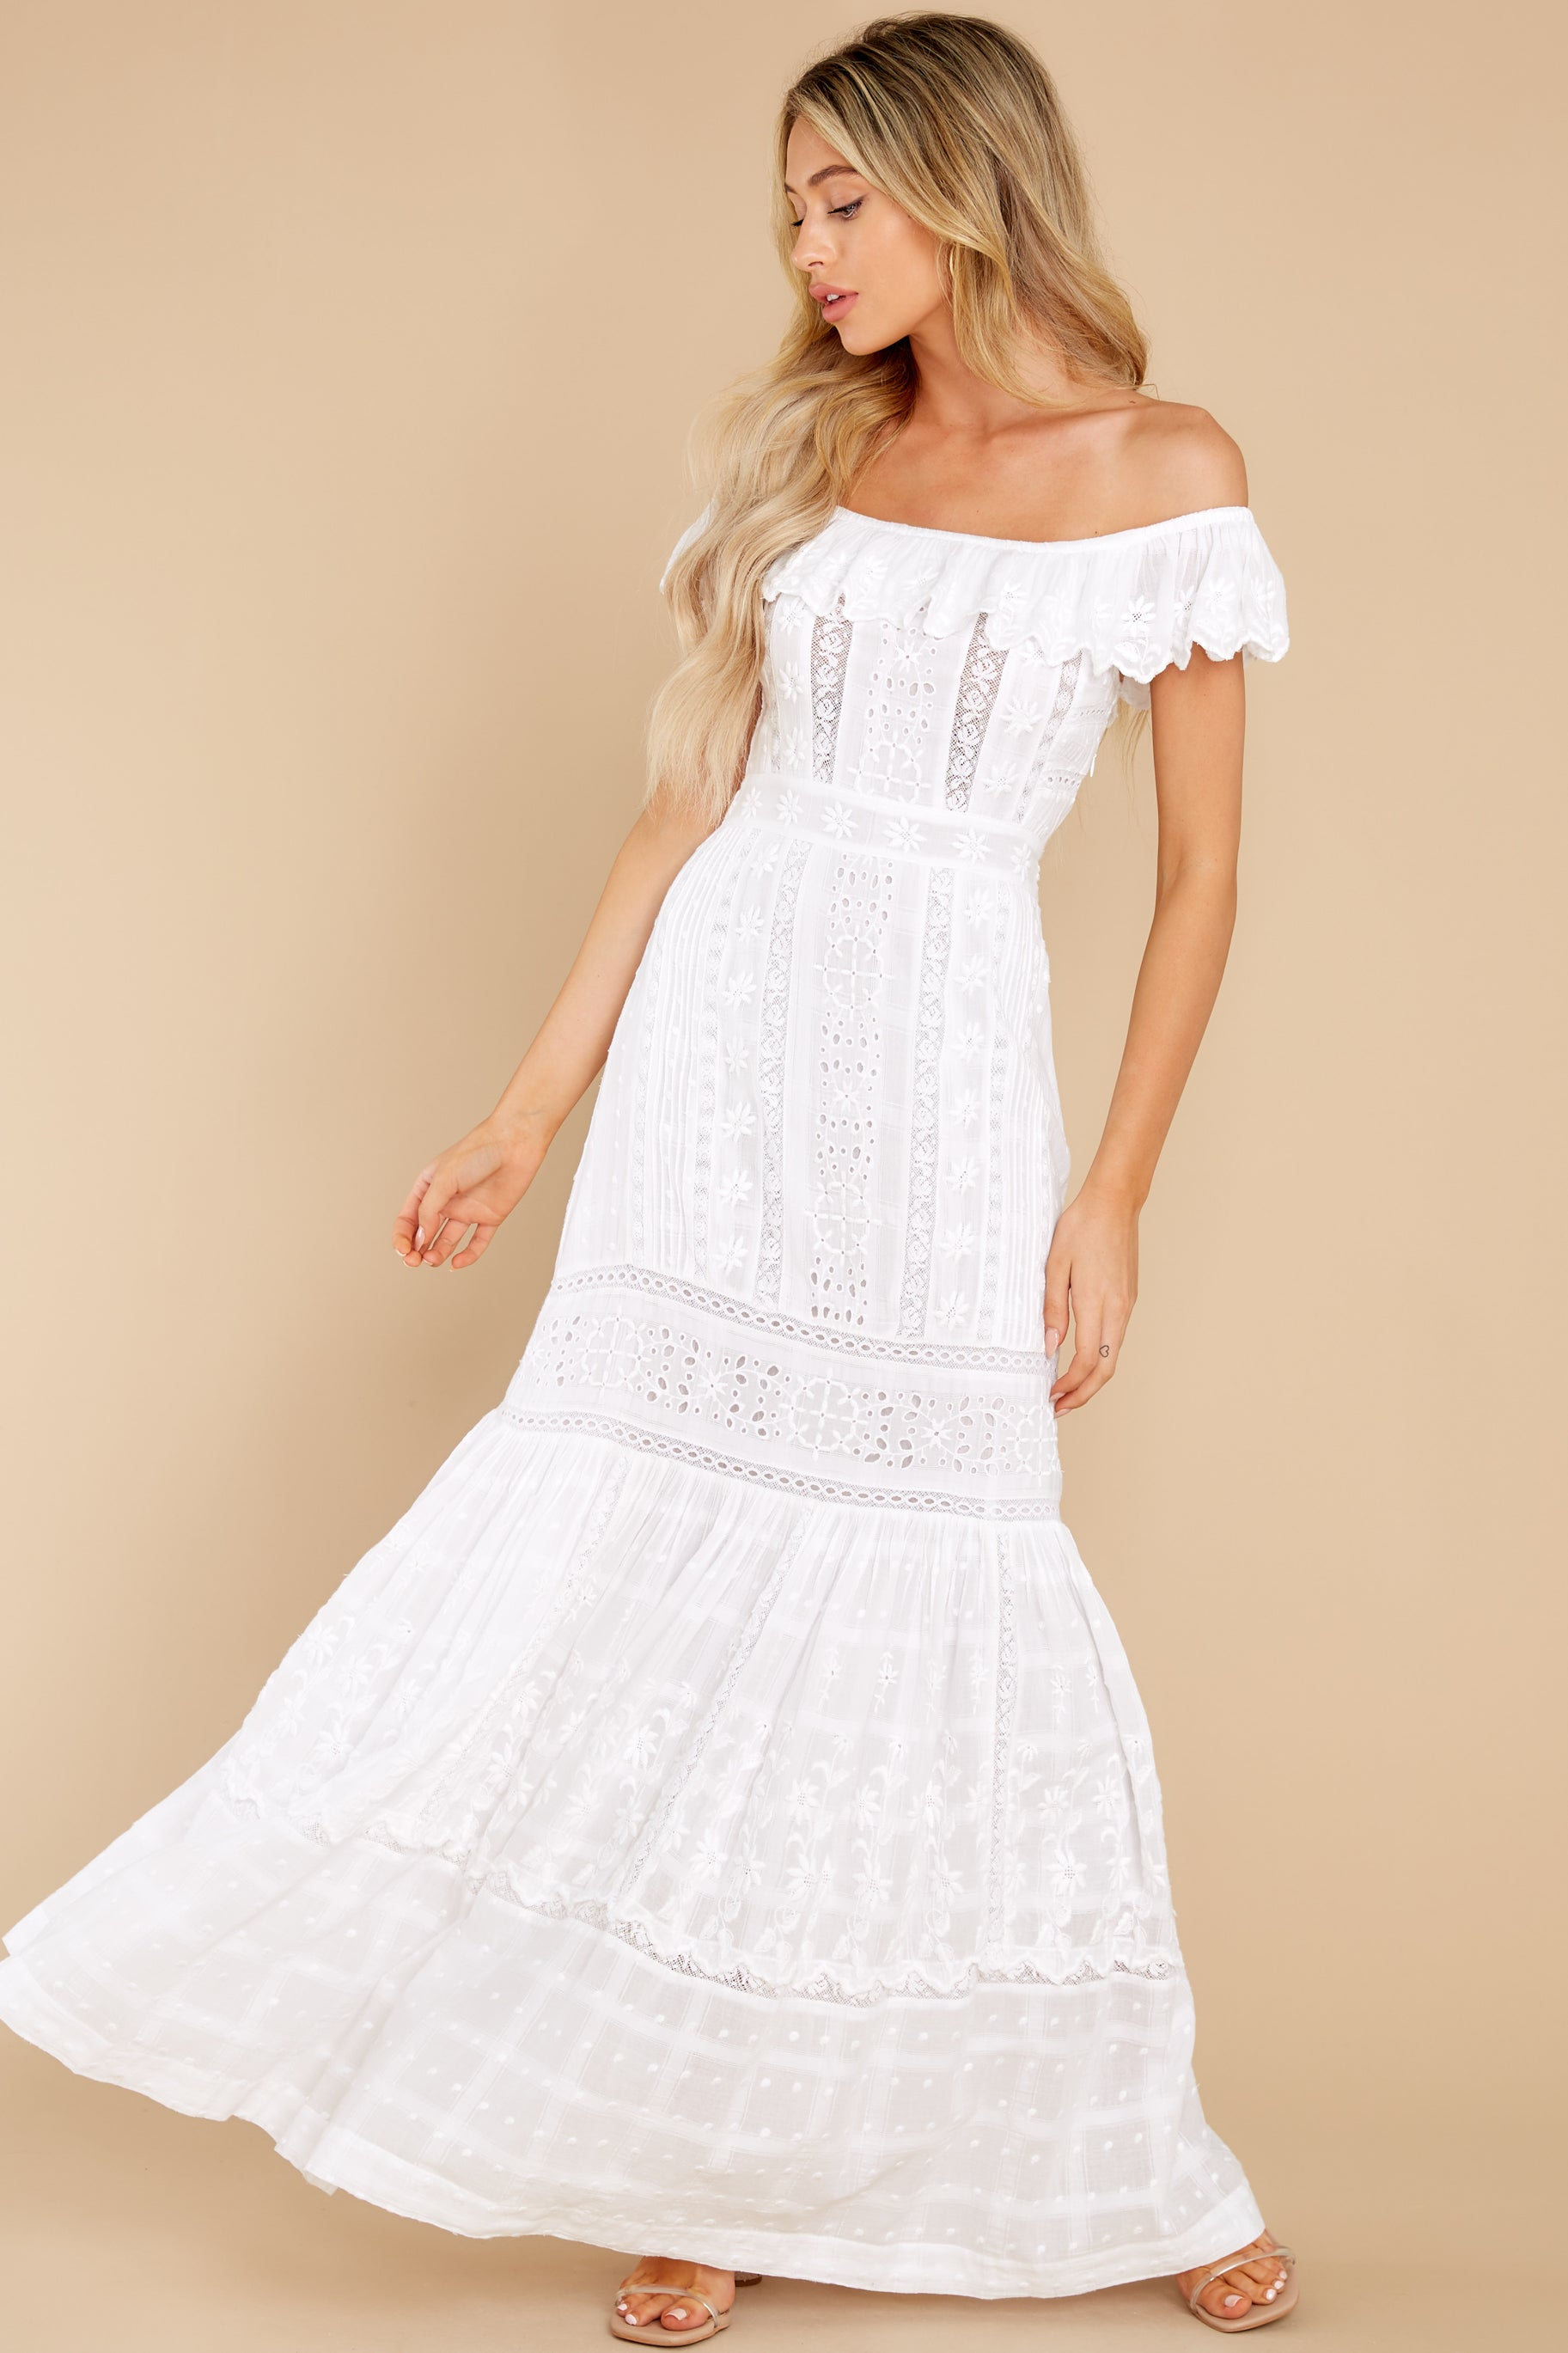 Cottagecore Dresses Aesthetic, Granny, Vintage Niko White Dress $495.00 AT vintagedancer.com